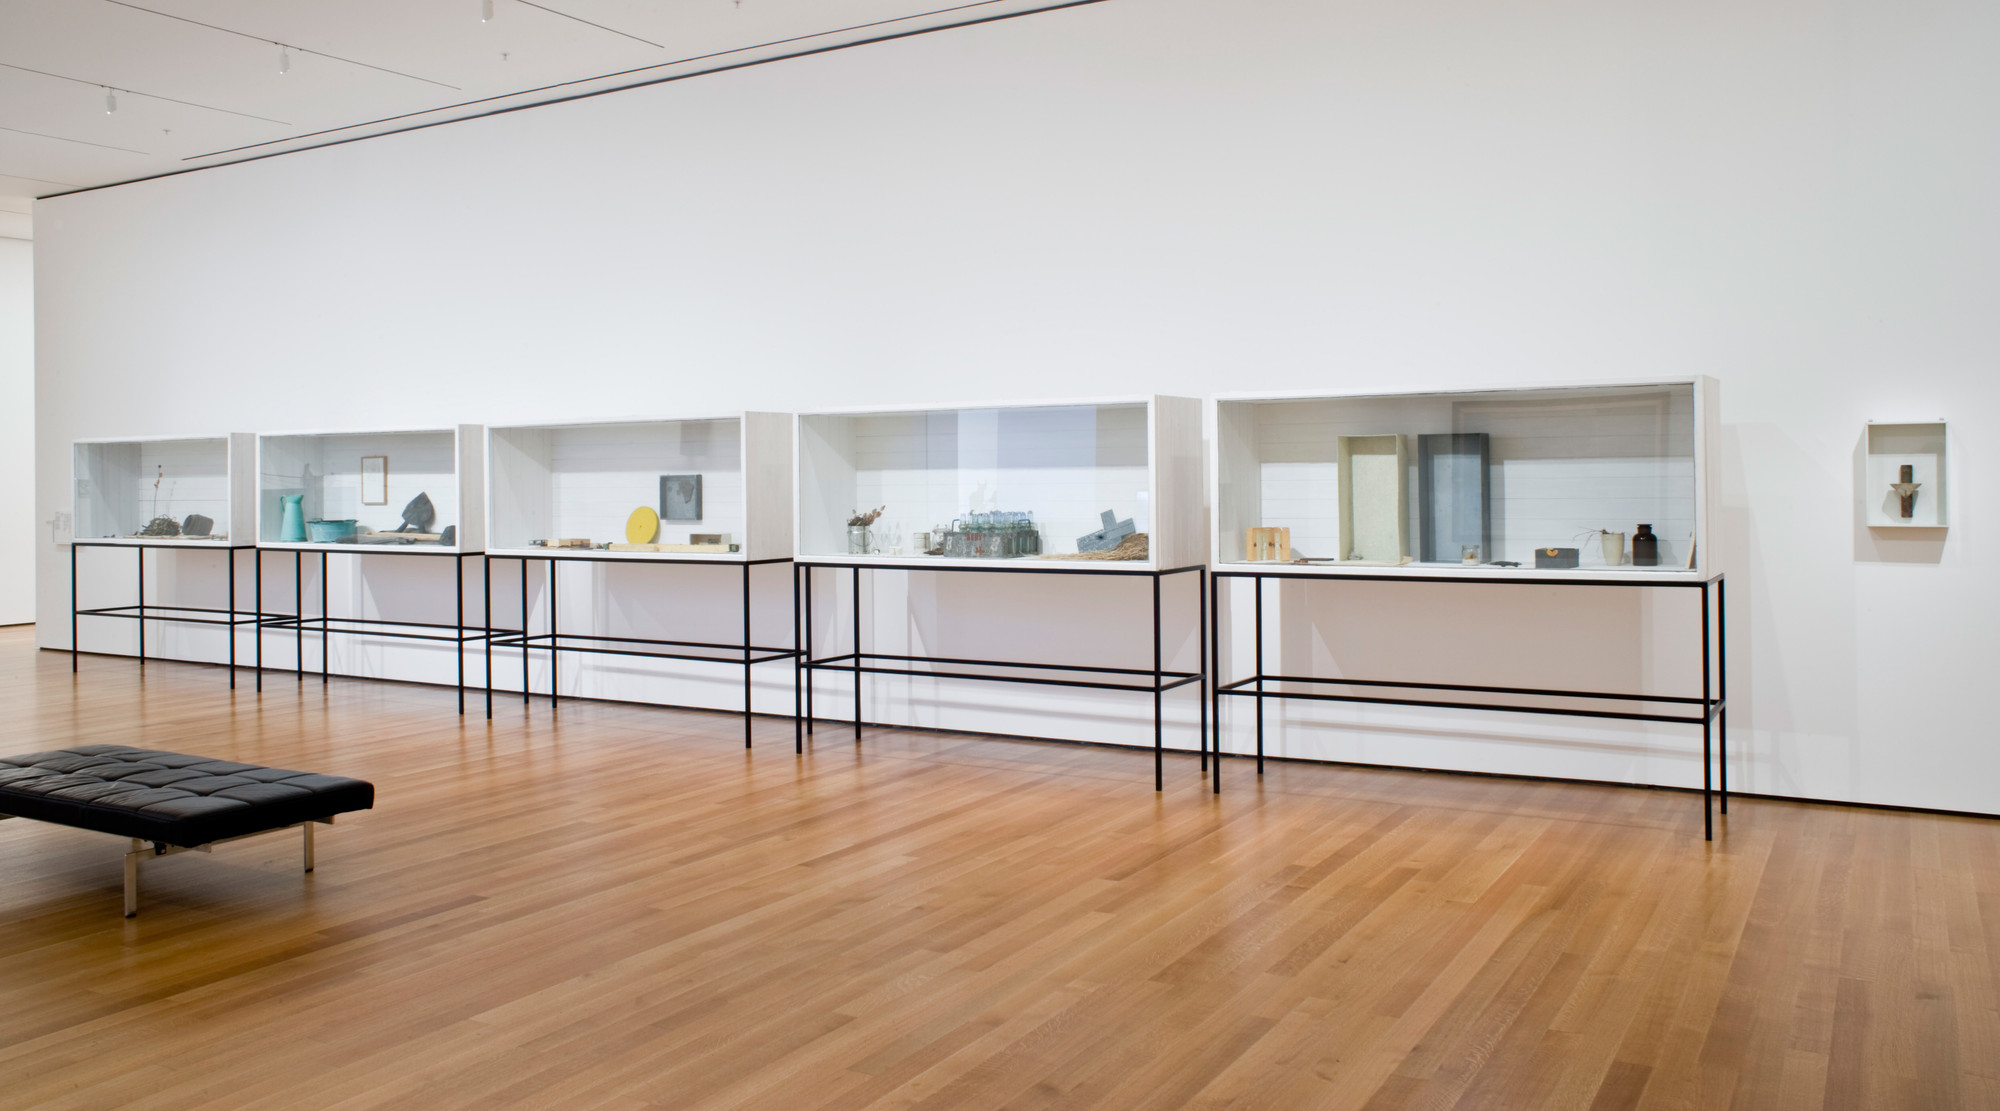 Installation view of Focus: Joseph Beuys at The Museum of Modern Art, New York. Photo: John Wronn